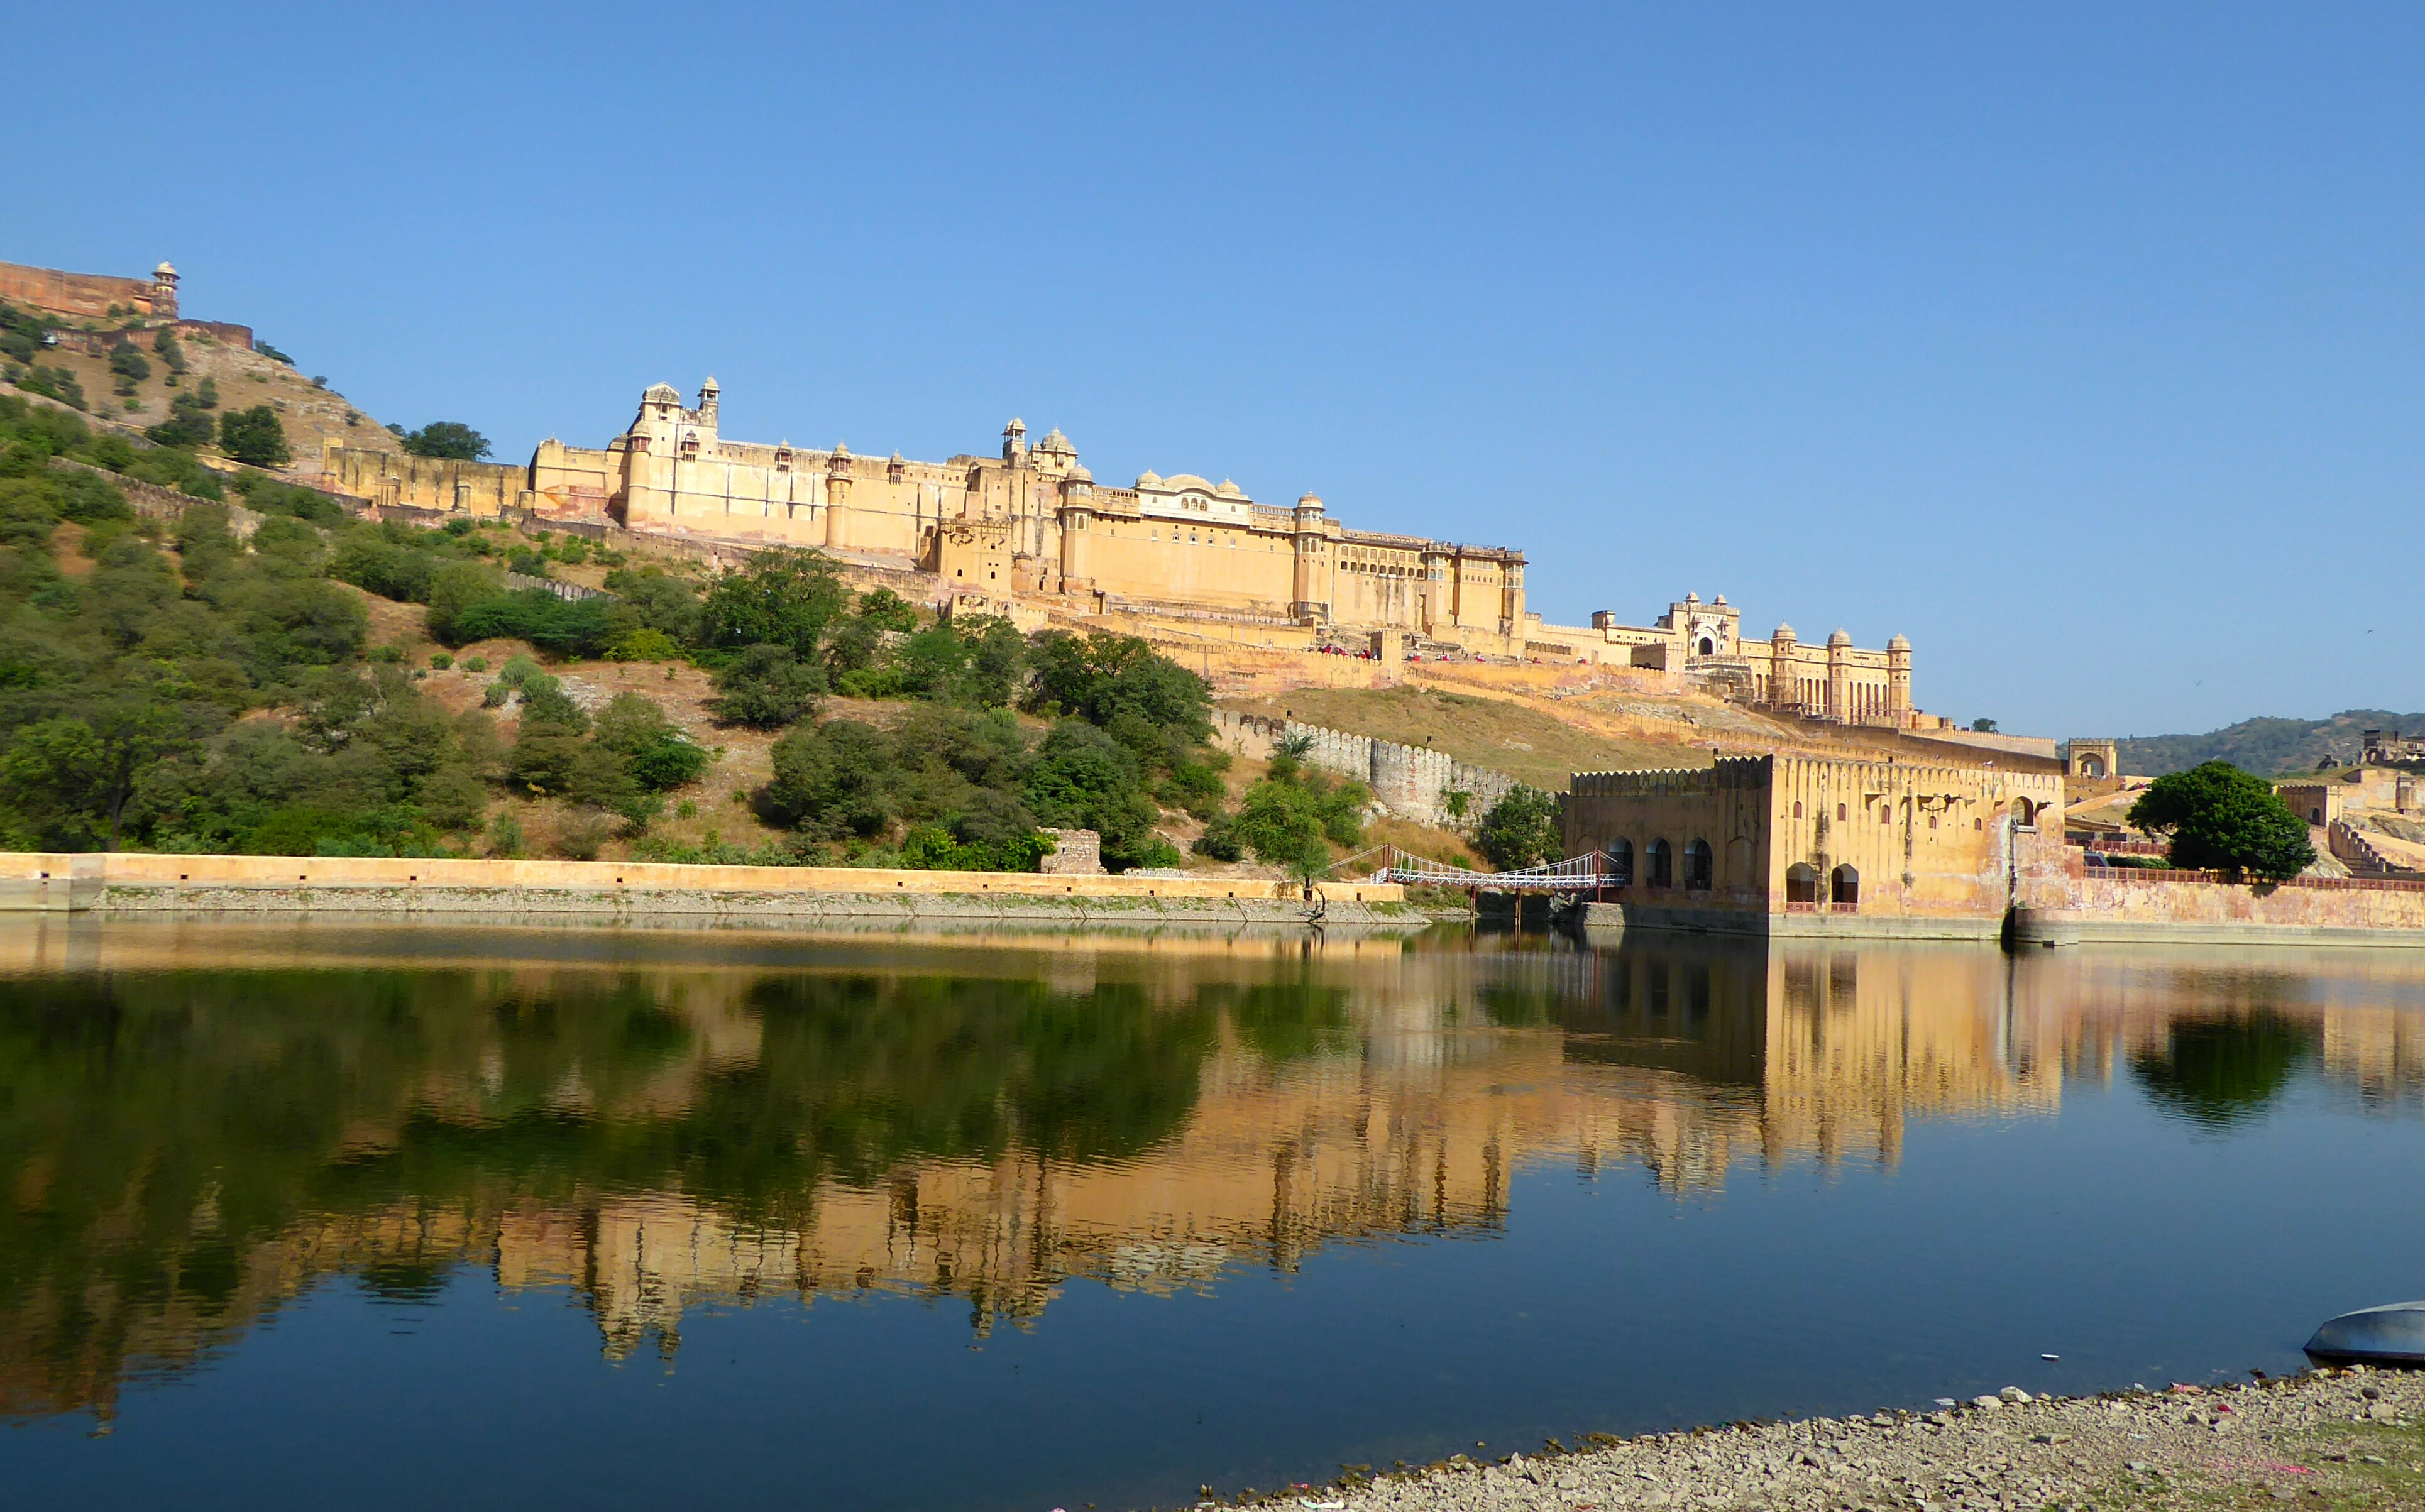 Amber Fort, Jaipur India - Rajasthan